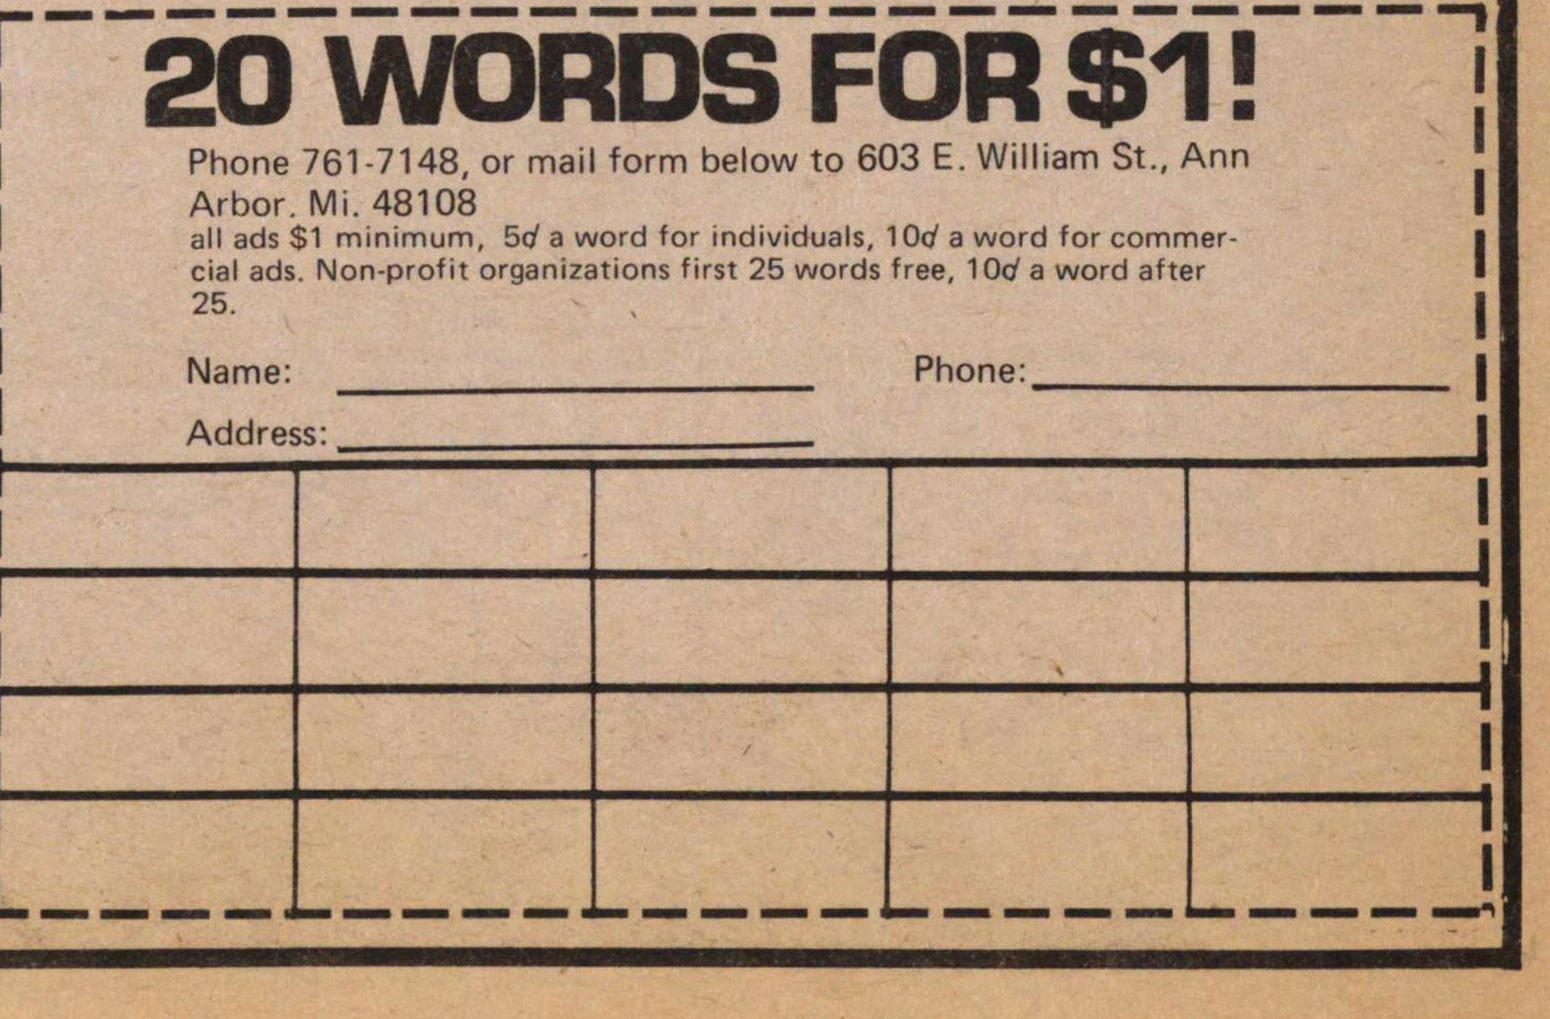 20 Words For $1! image